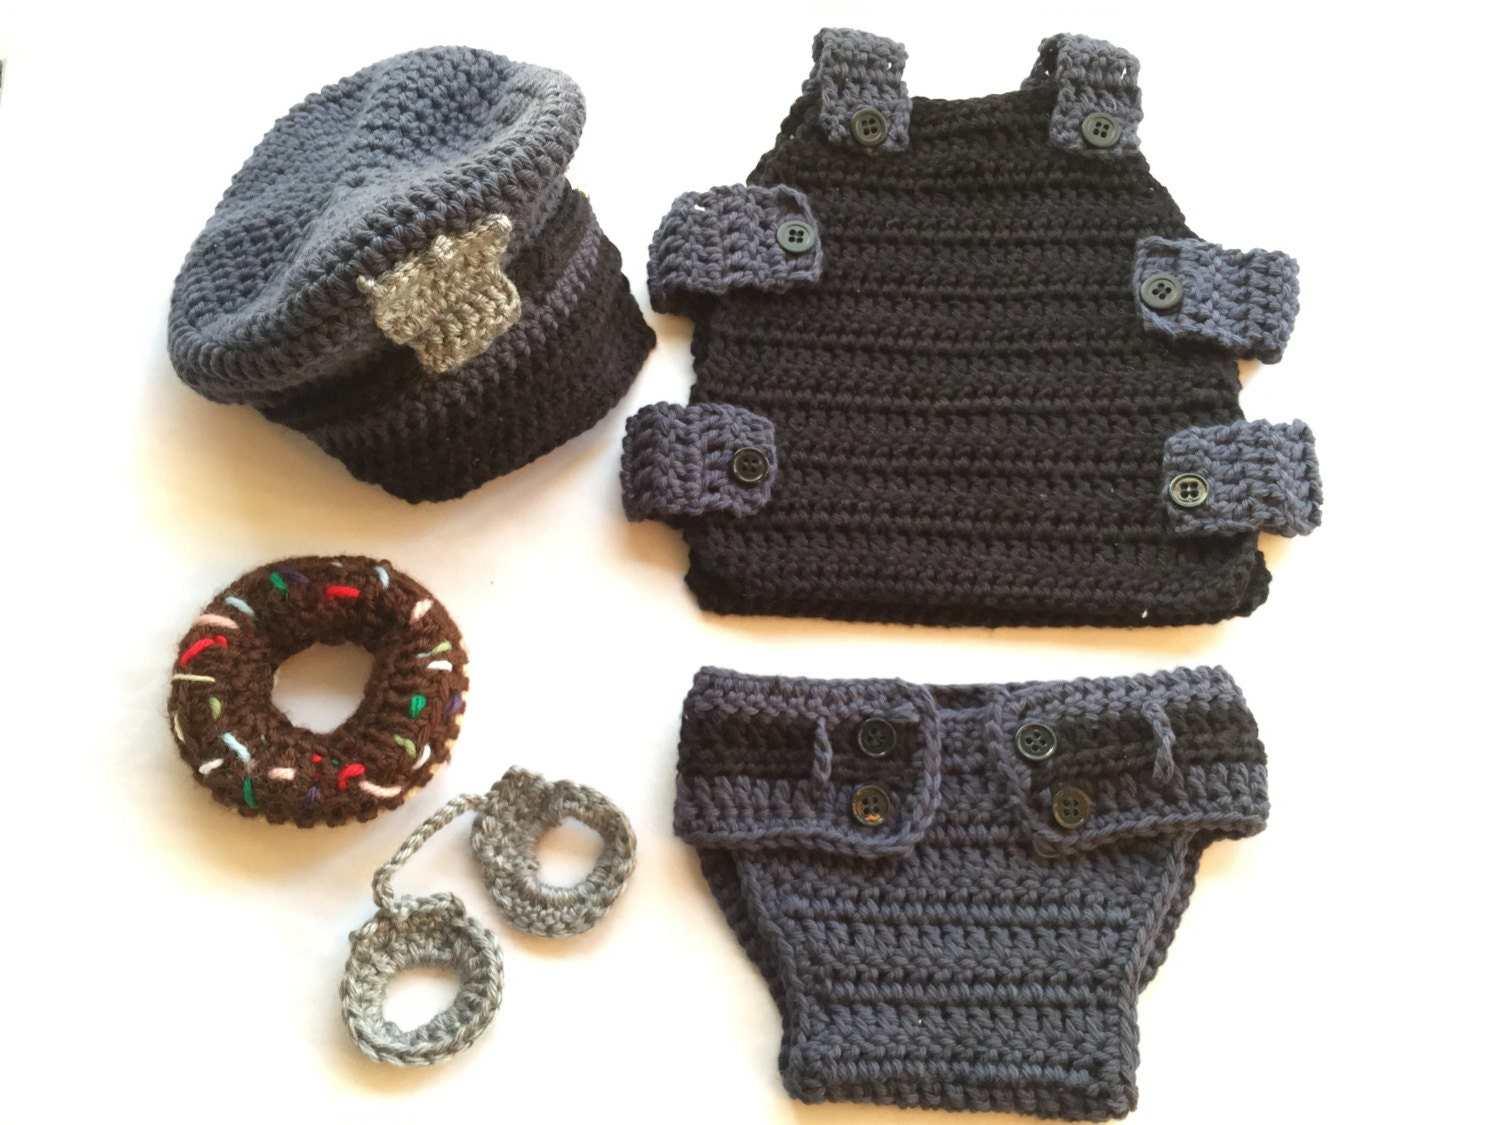 Crochet Baby Policeman Pattern Baby Policeman Outfit Pattern Police Officer Costume Policeman